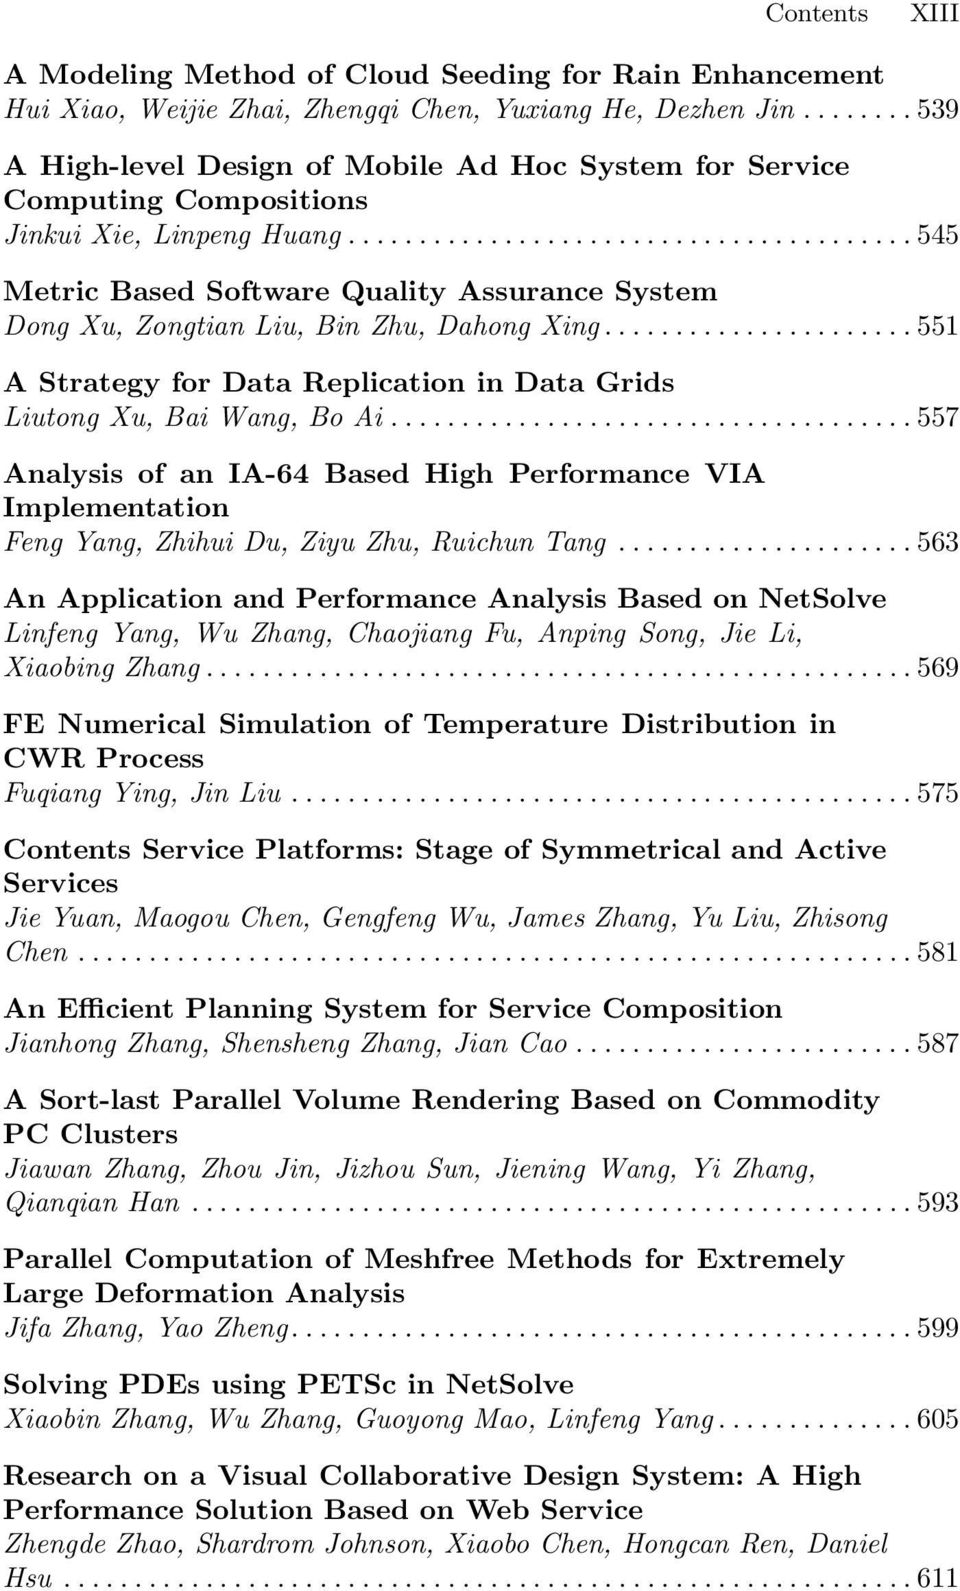 ..545 Metric Based Software Quality Assurance System Dong Xu, Zongtian Liu, Bin Zhu, Dahong Xing...551 A Strategy for Data Replication in Data Grids Liutong Xu, Bai Wang, Bo Ai.